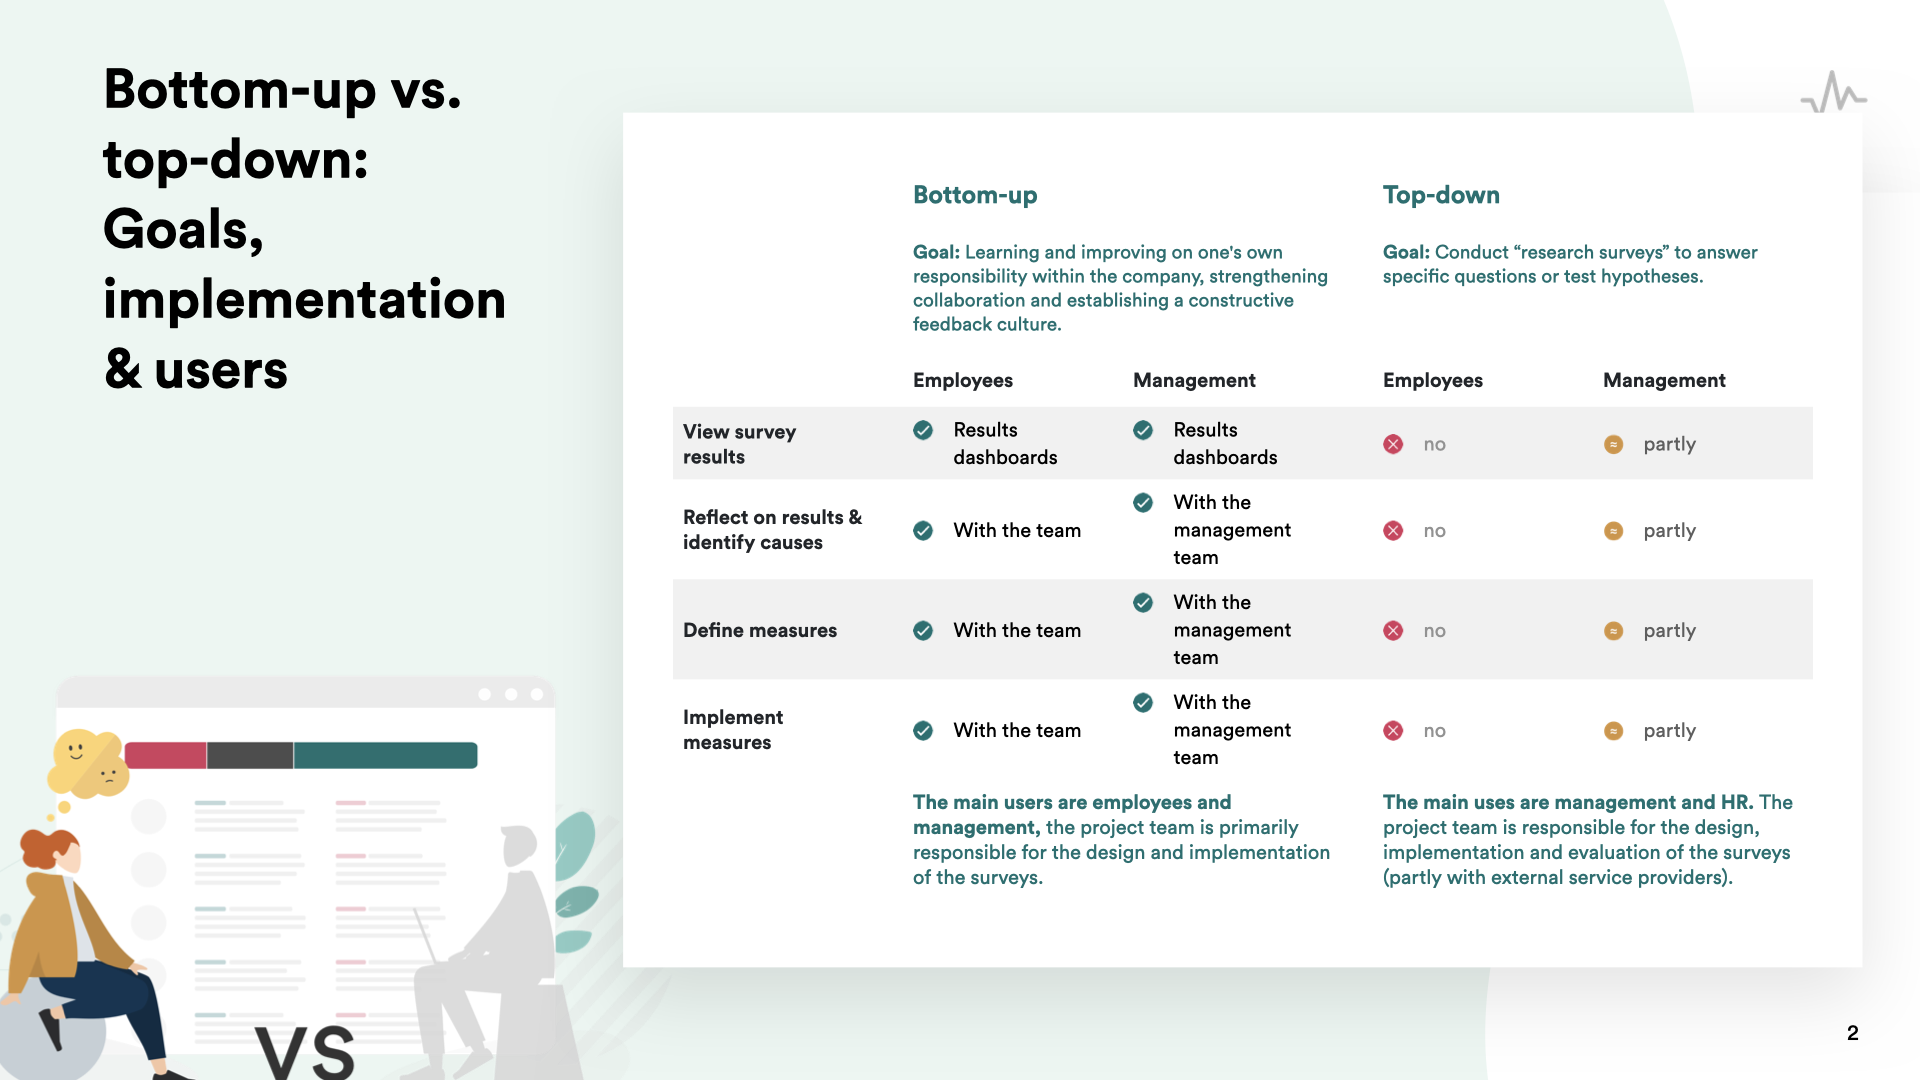 Differences between bottom-up and top-down-surveys